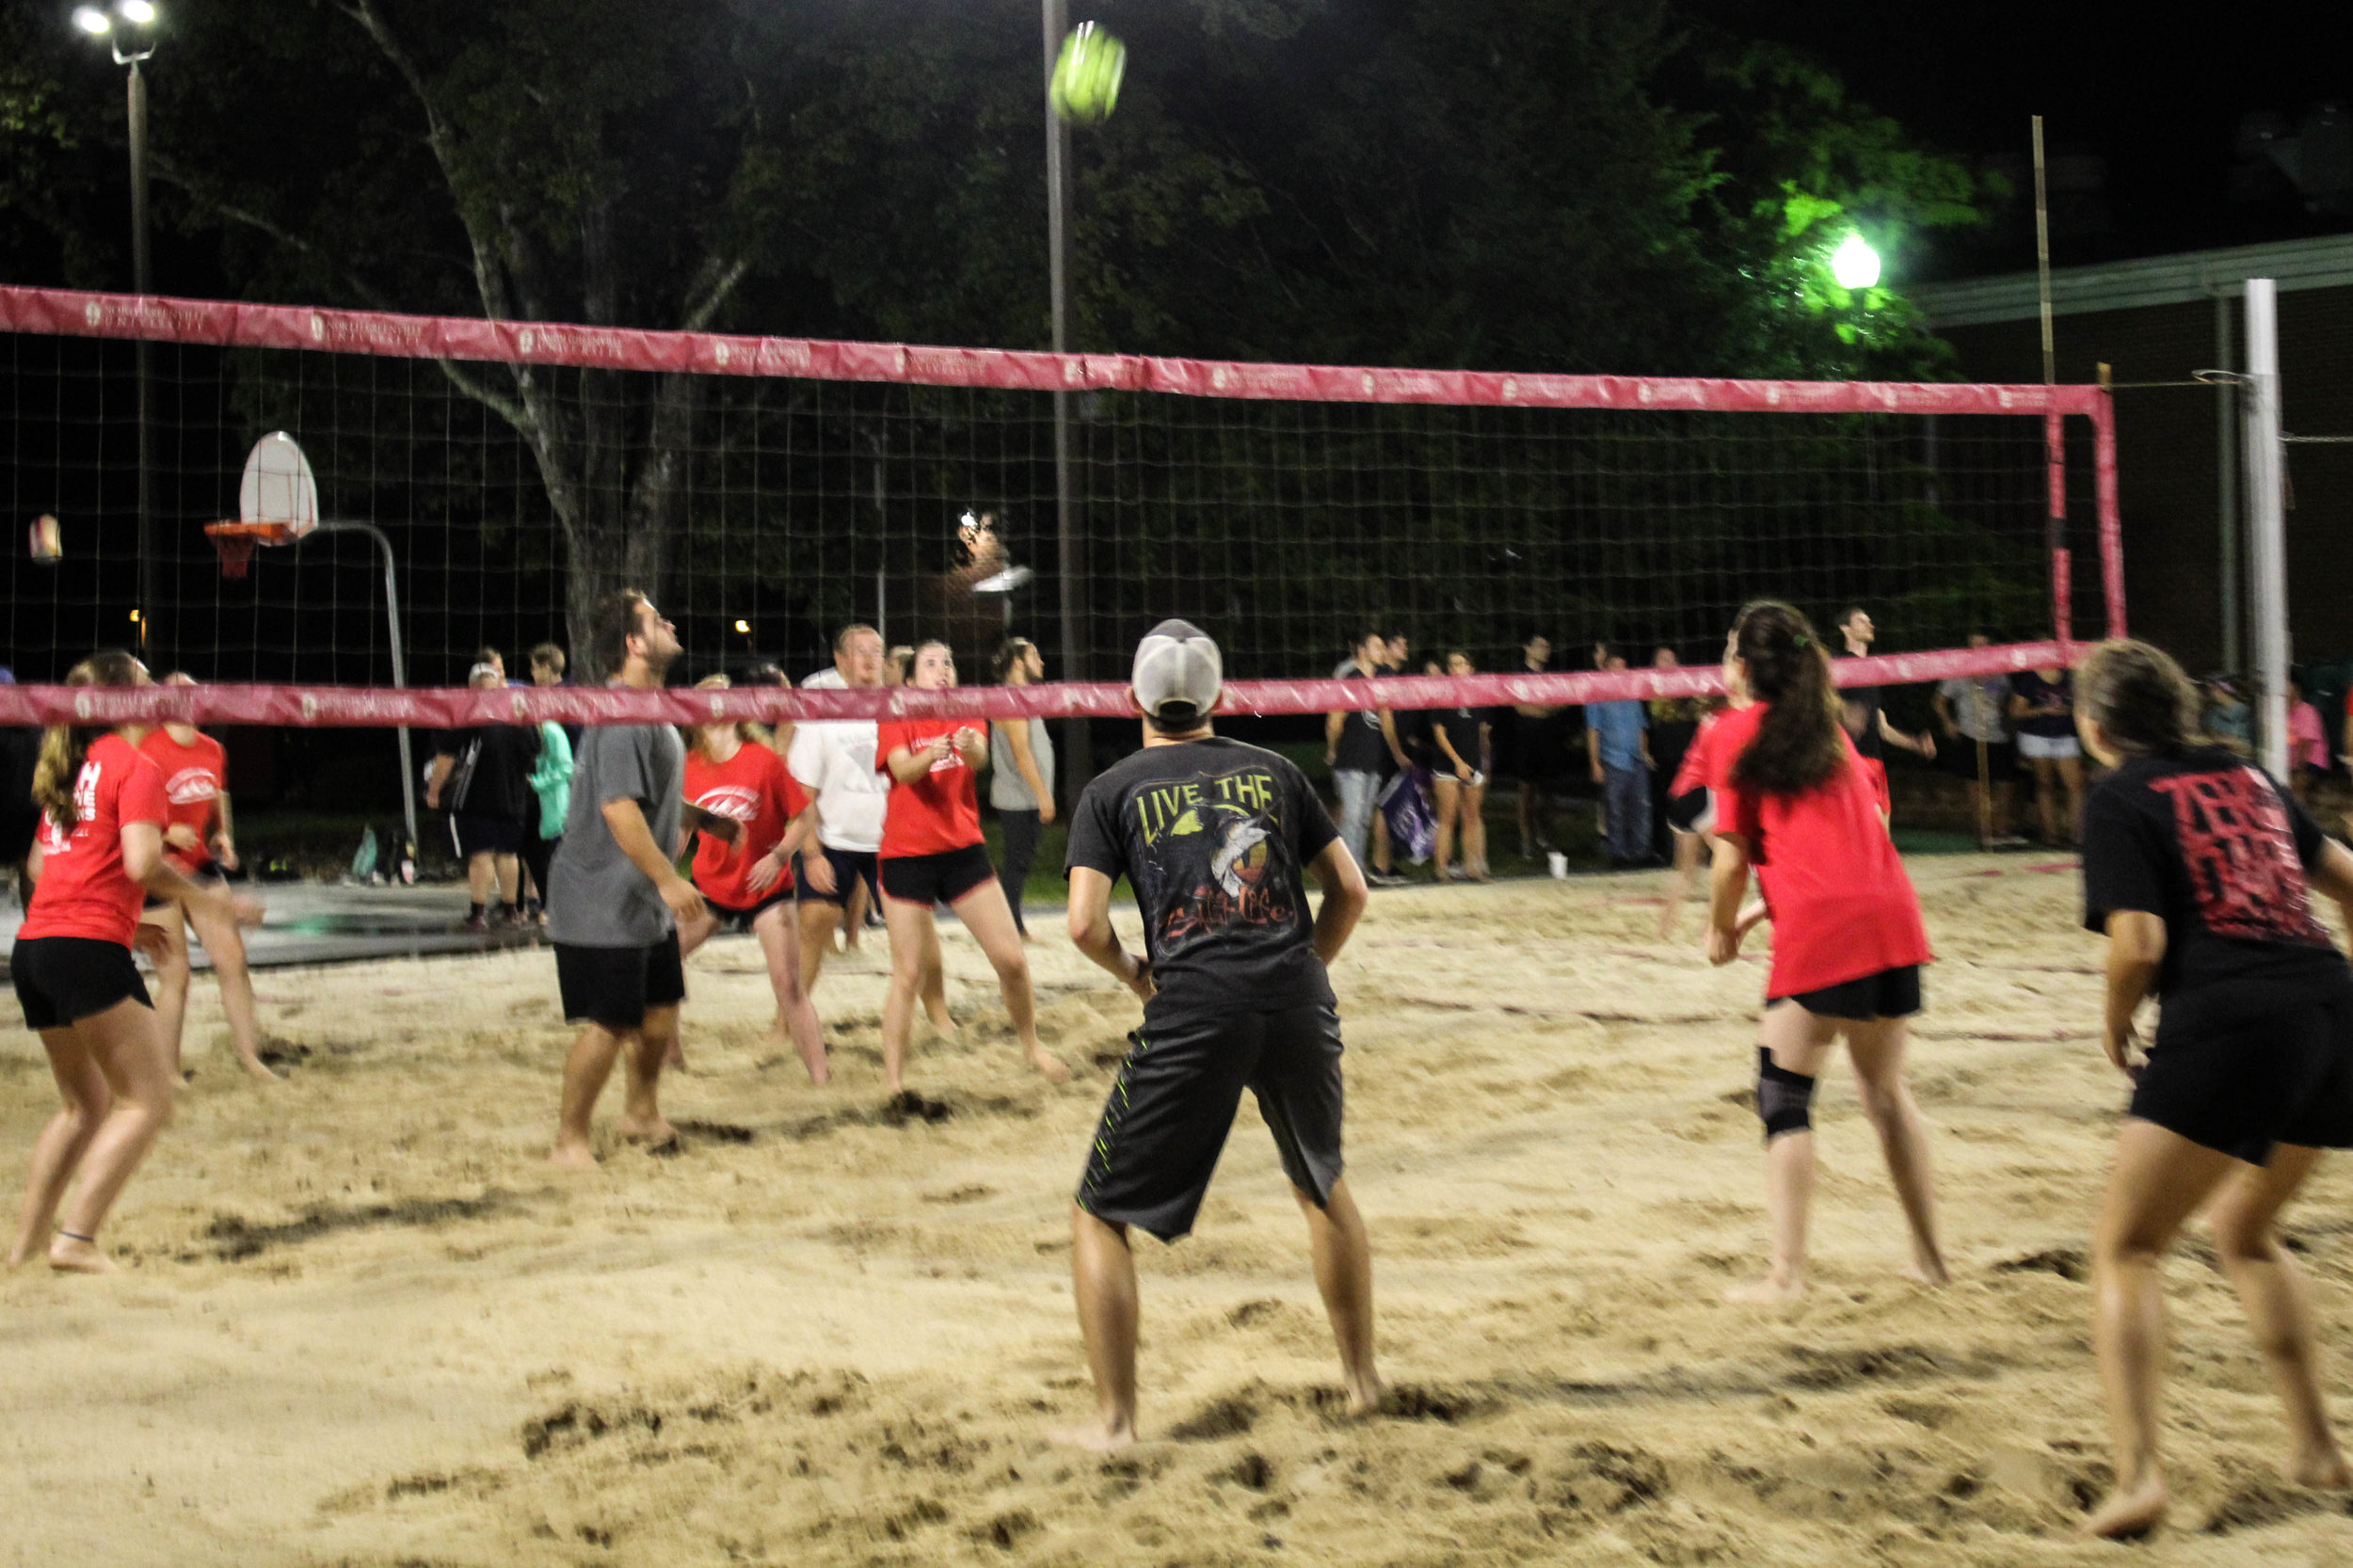 The animal science club (black) squat to hit the ball back to the campus ambassadors (red).